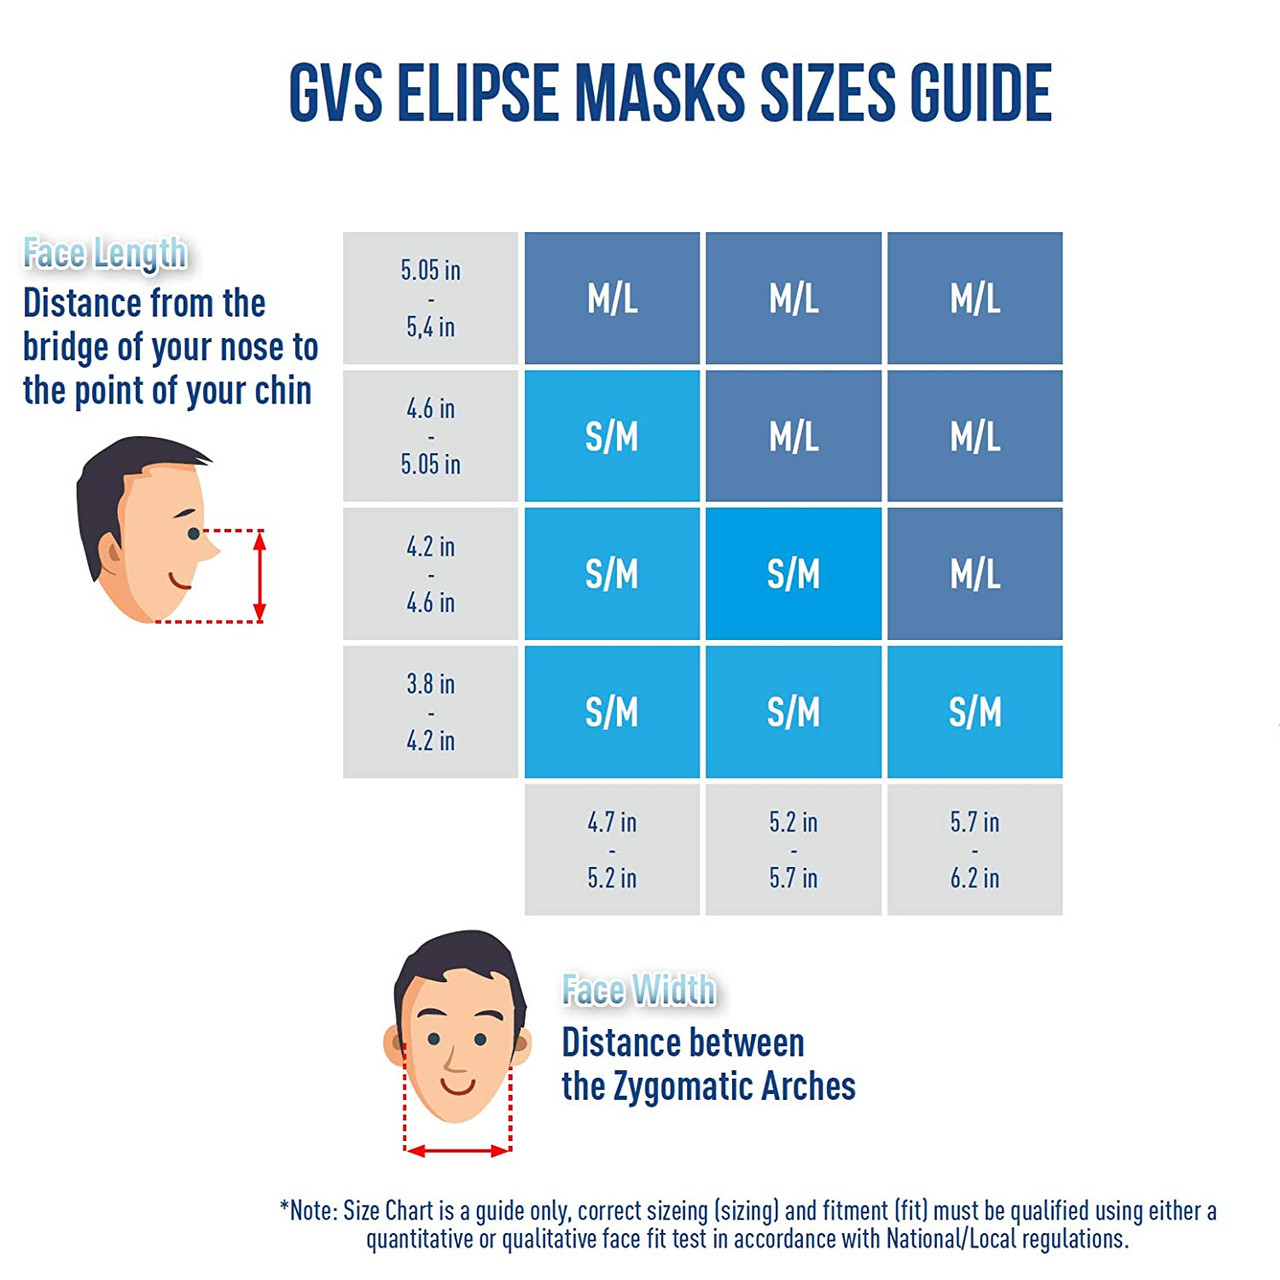 GVS SPR459, SIZE:M/L, Elipse P100 Nuisance Dust Half Mask, Respirator with replaceable and reusable filters included